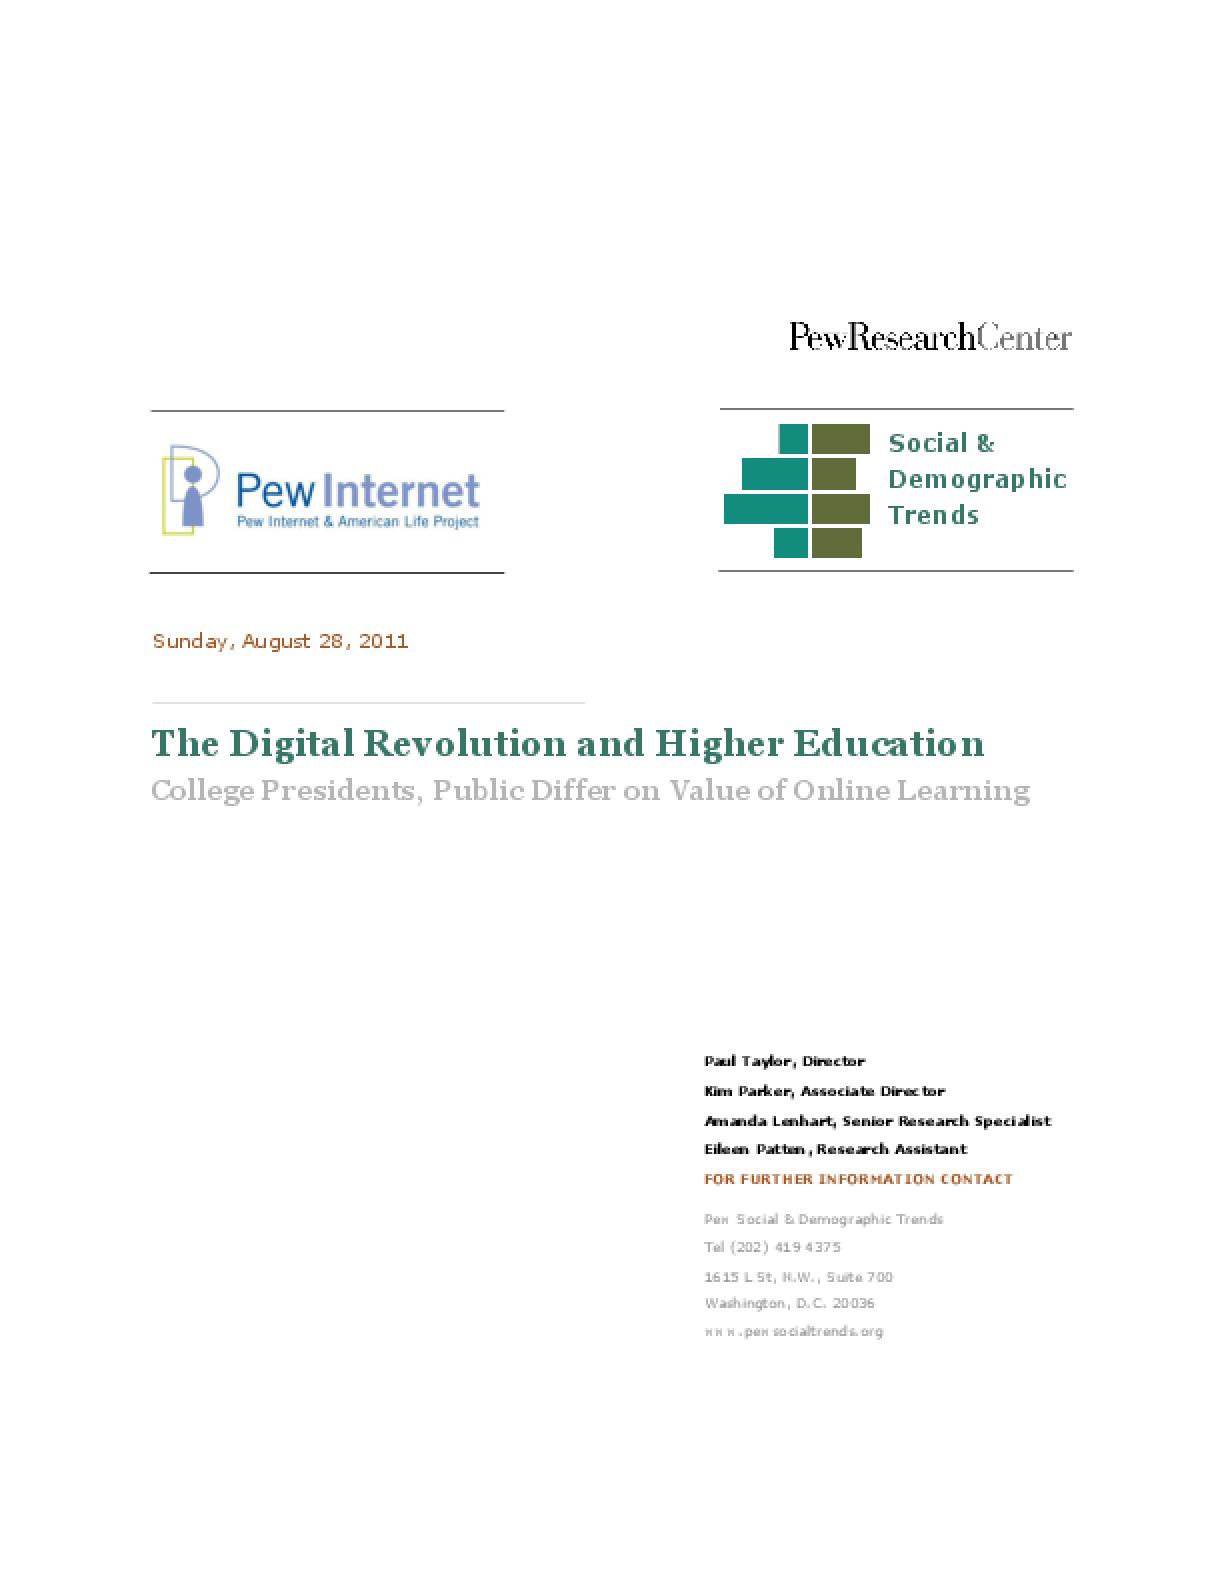 Digital Revolution and Higher Education, The